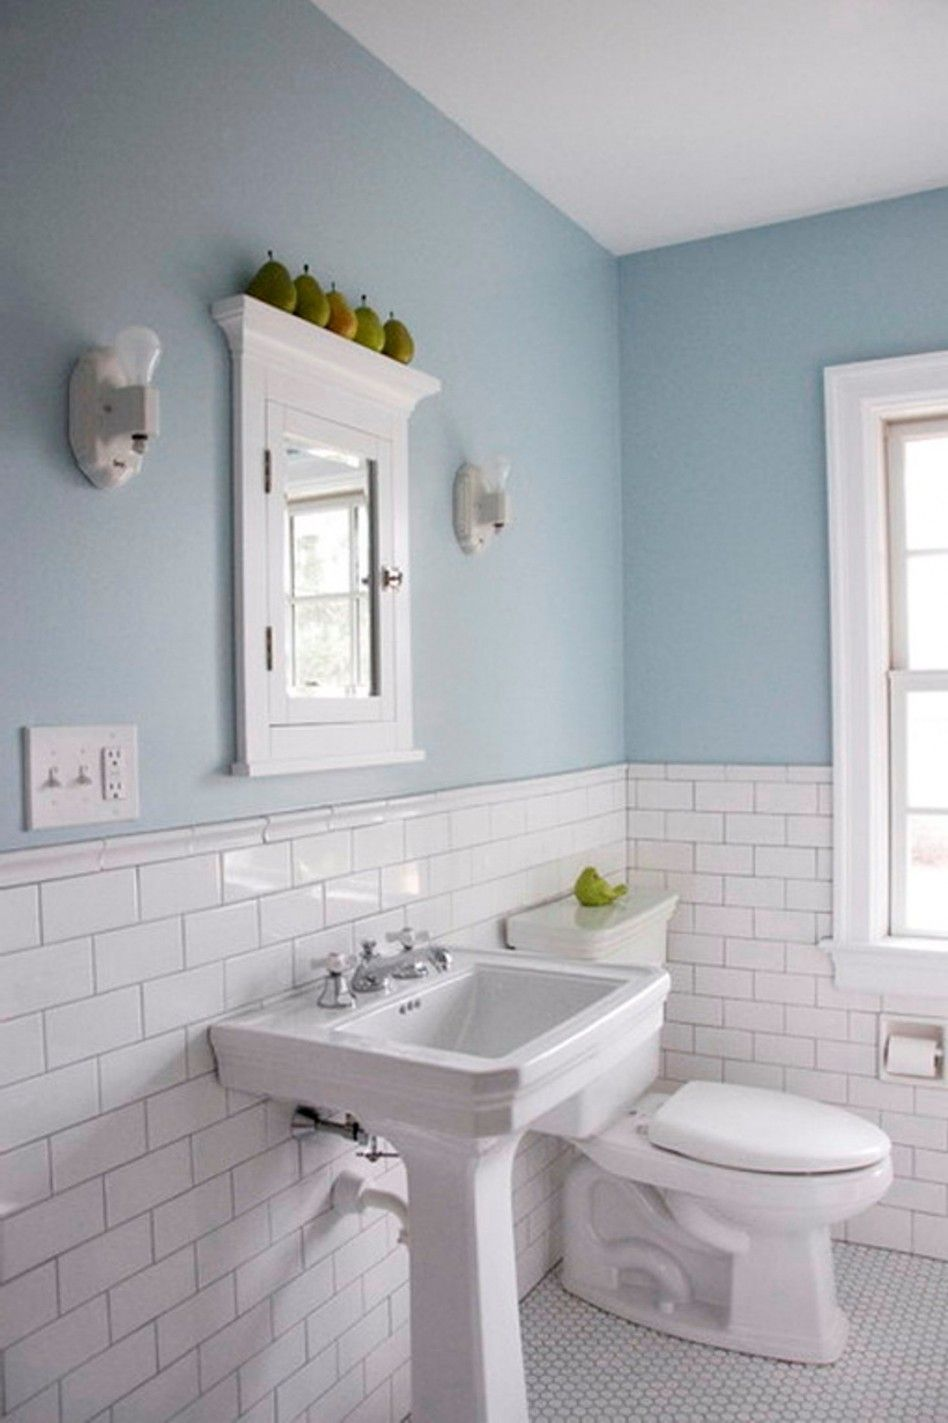 White Subyway Color Combination Traditional Bathroom Floor Tile Also Wahbasin Water Closet And Light Blue Bathroom Bathroom Wall Tile White Subway Tile Shower